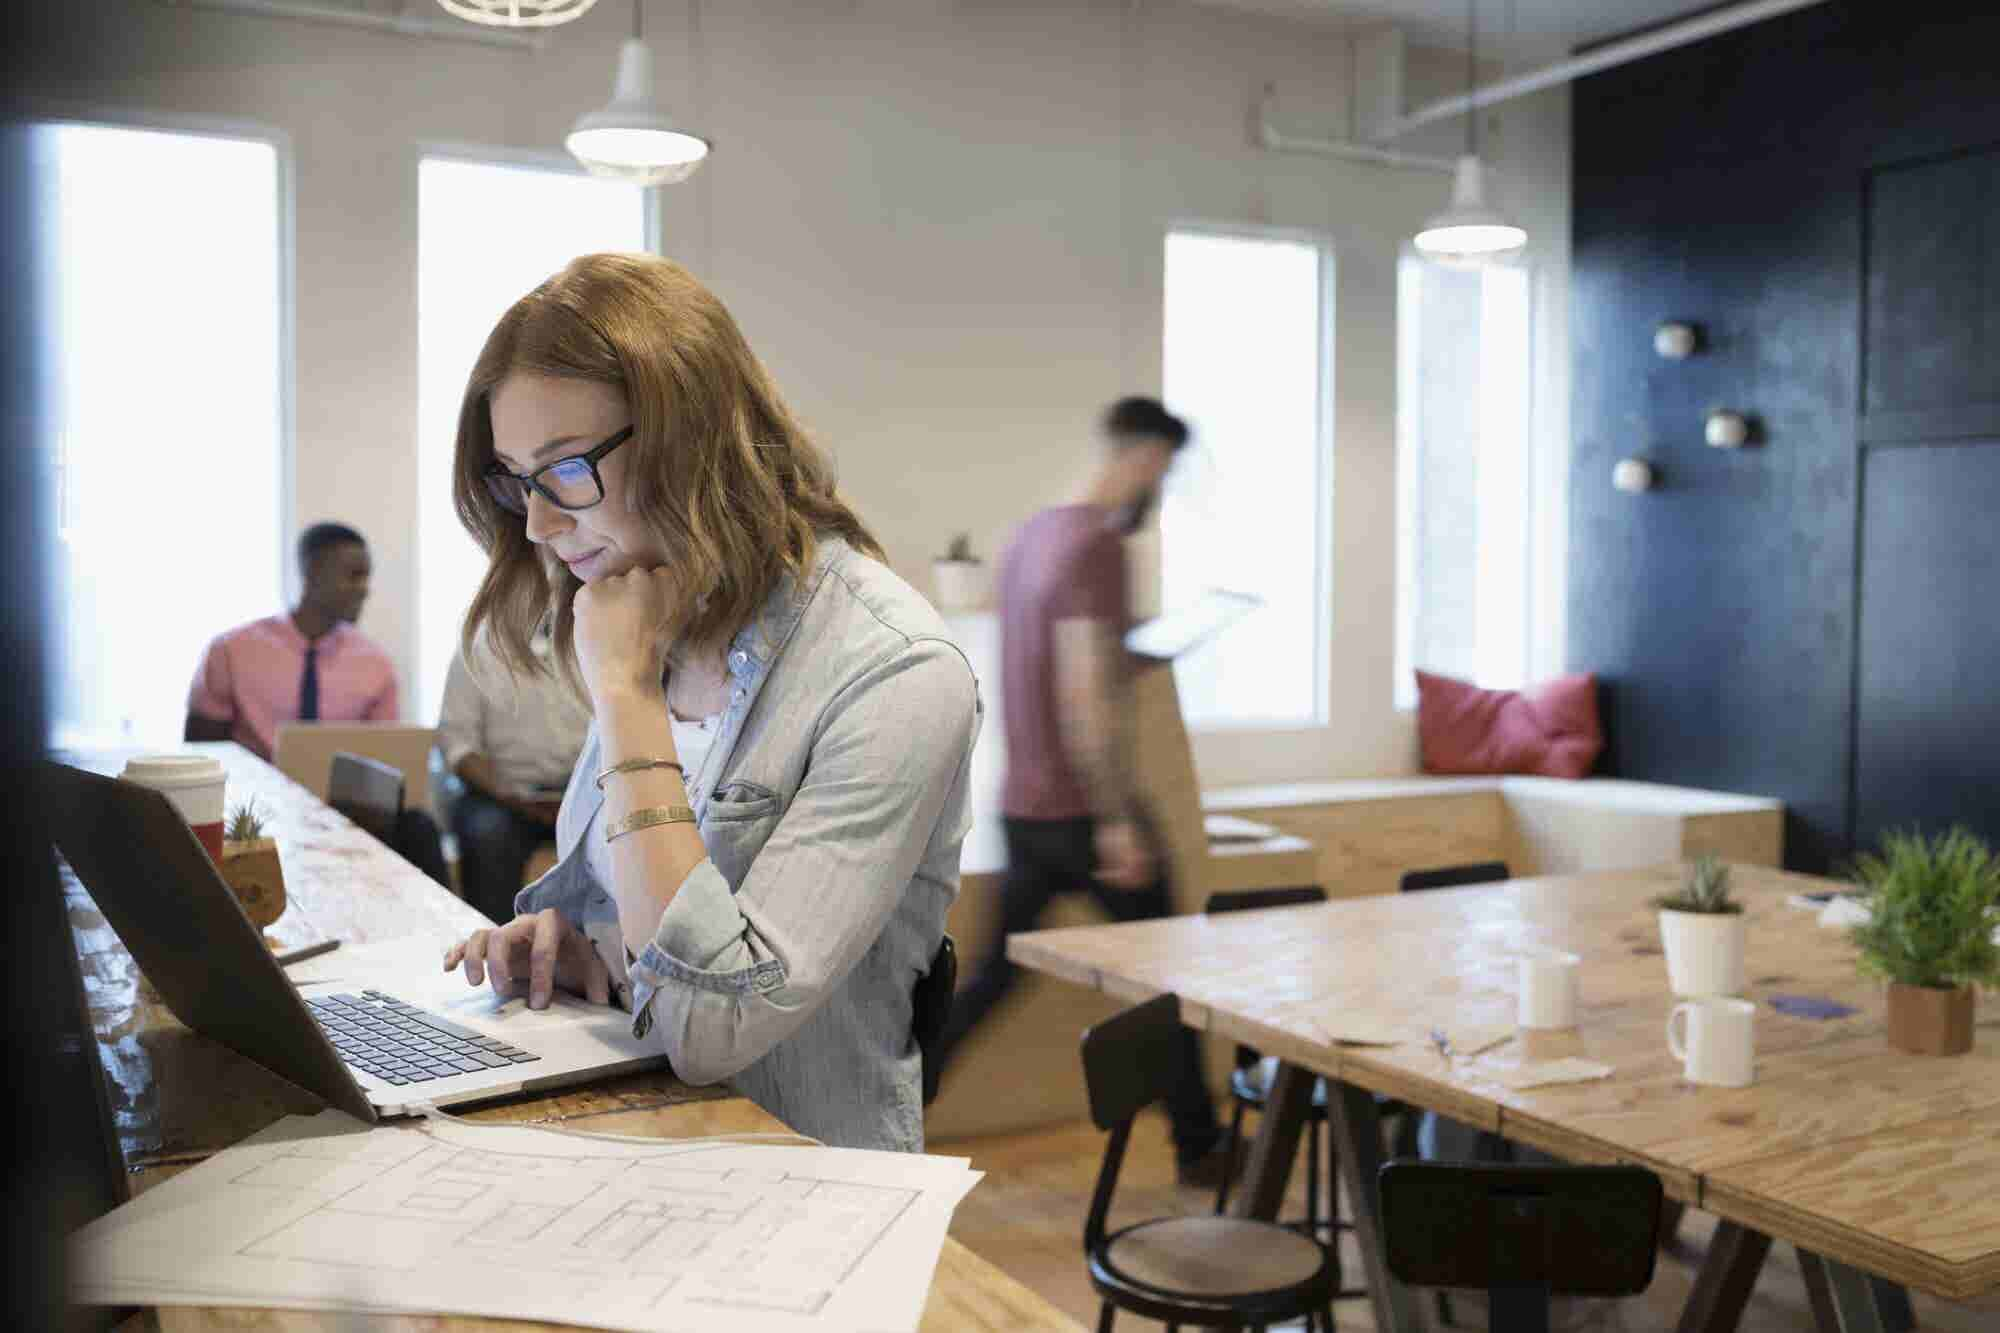 4 Ways to Increase Your Focus at Work